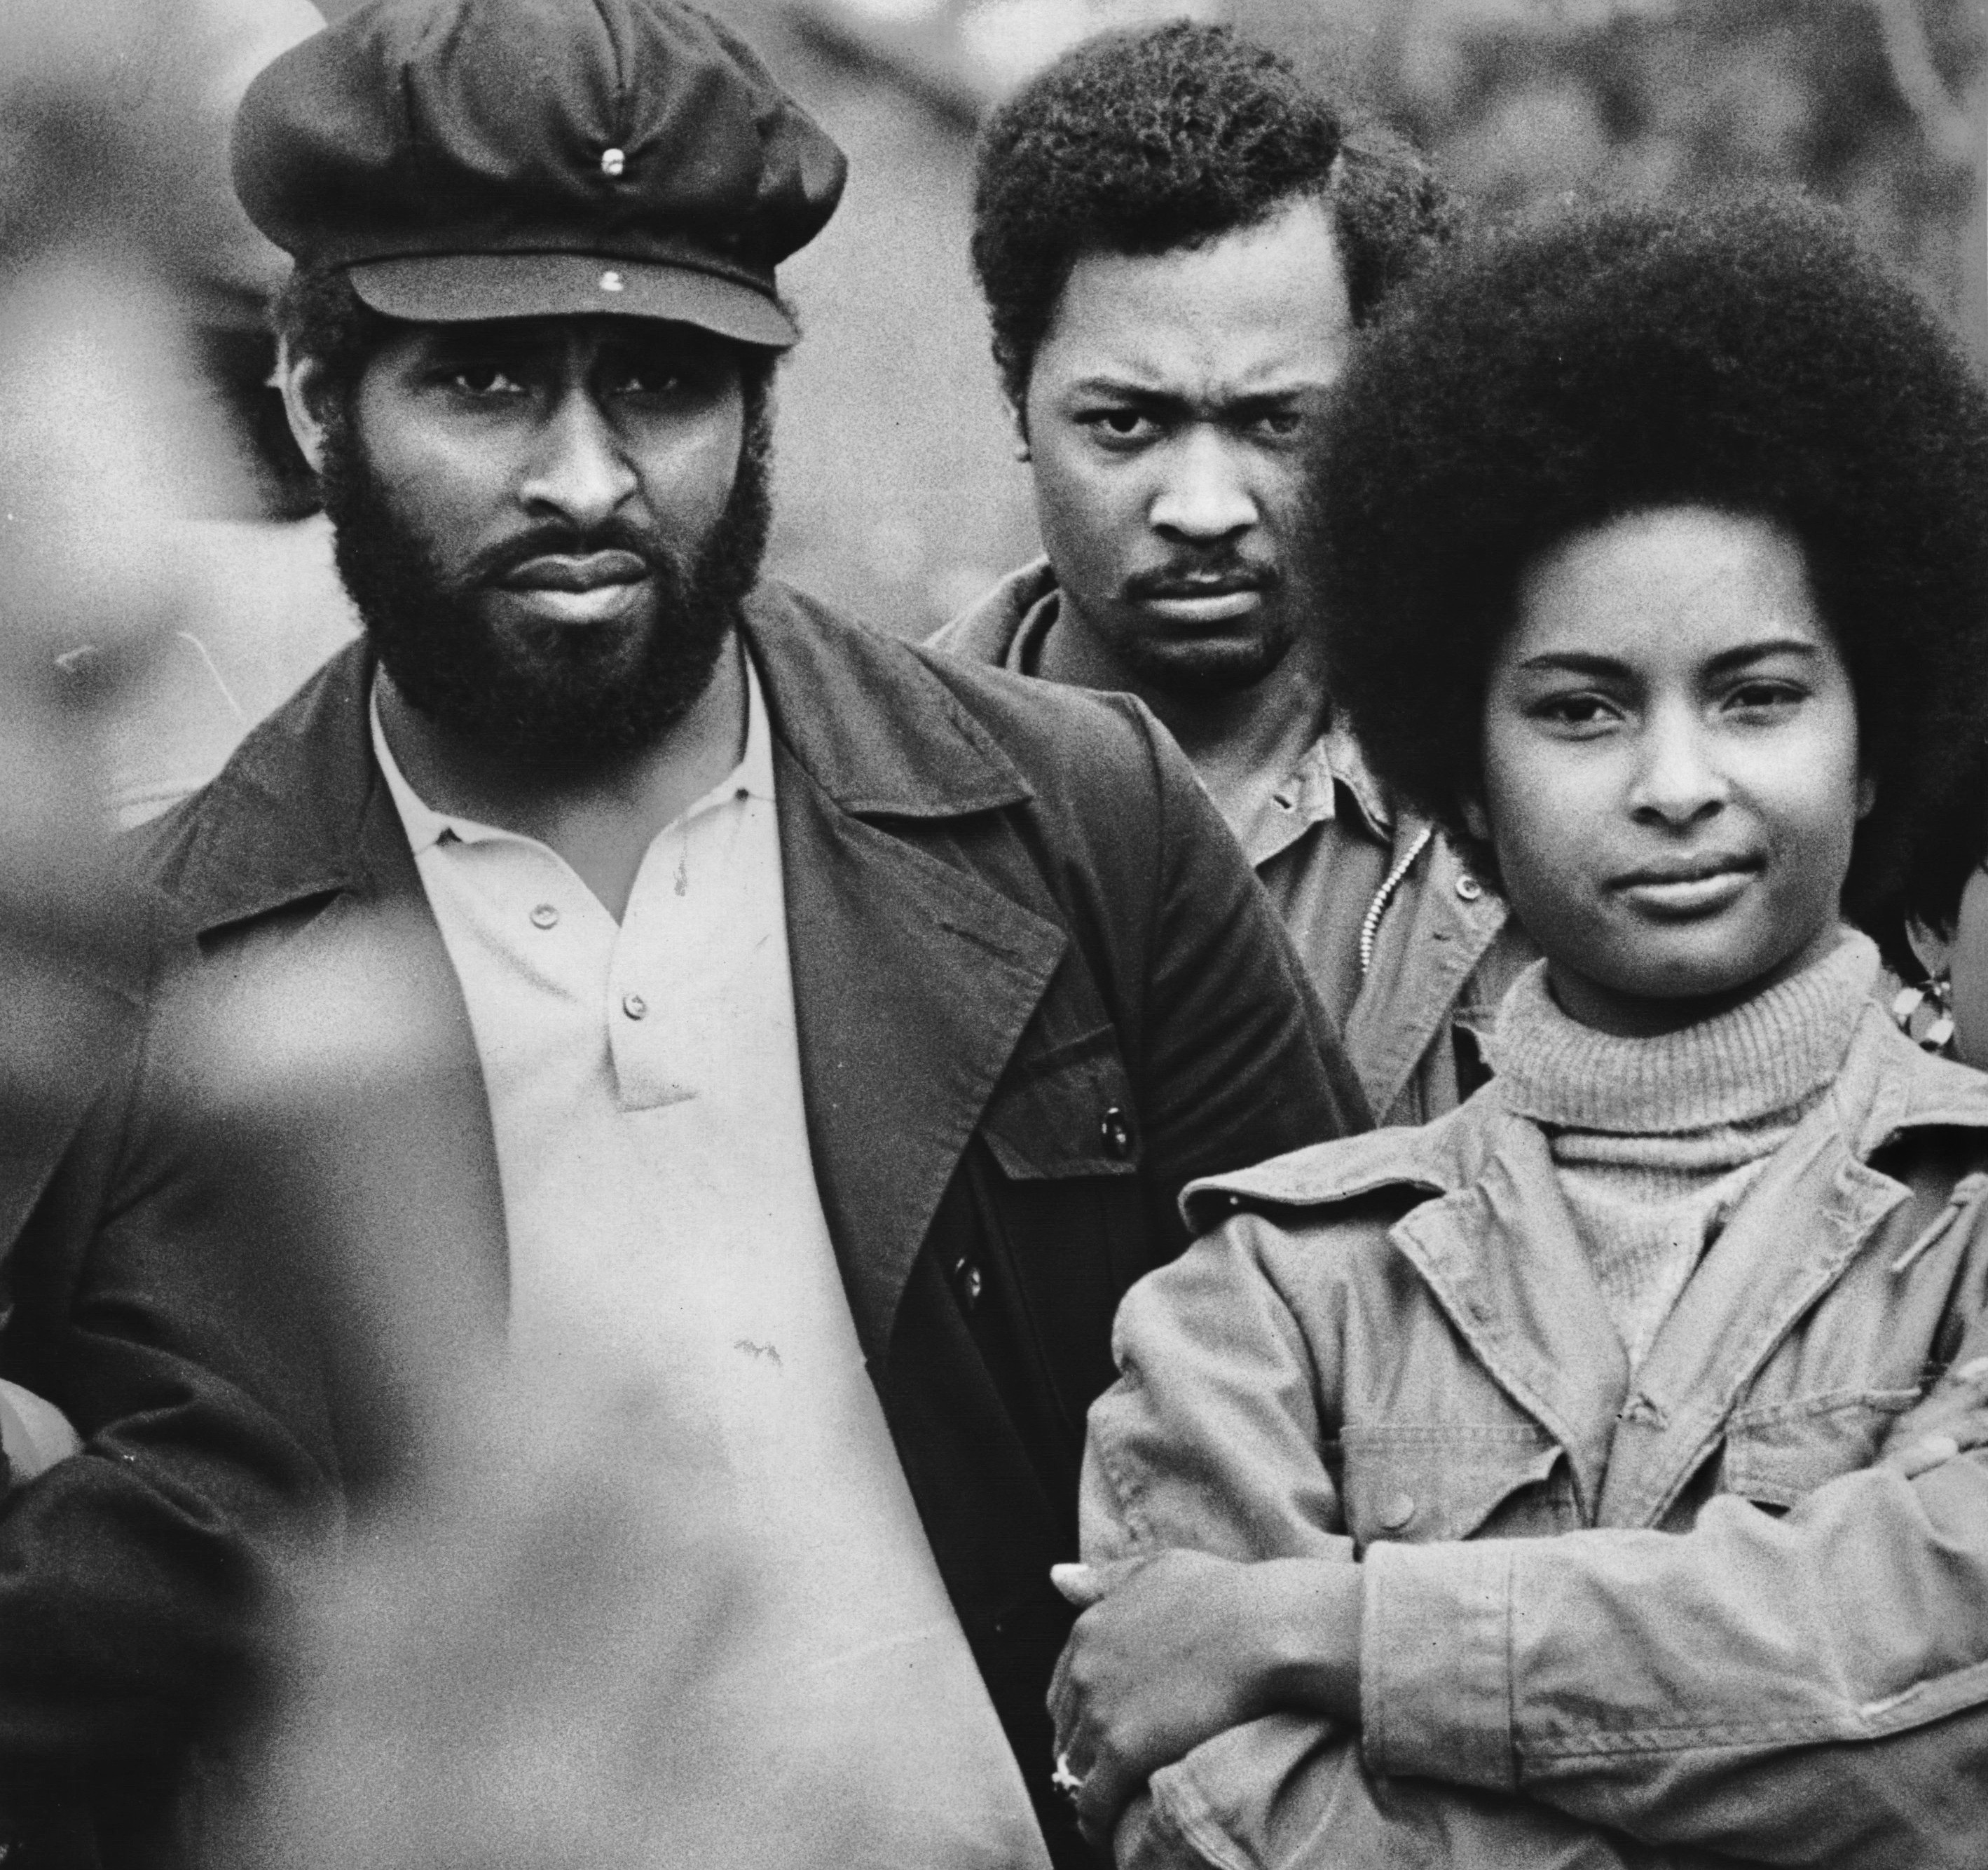 Long before 'Defund Police' movement, Portland's Black Panthers ...